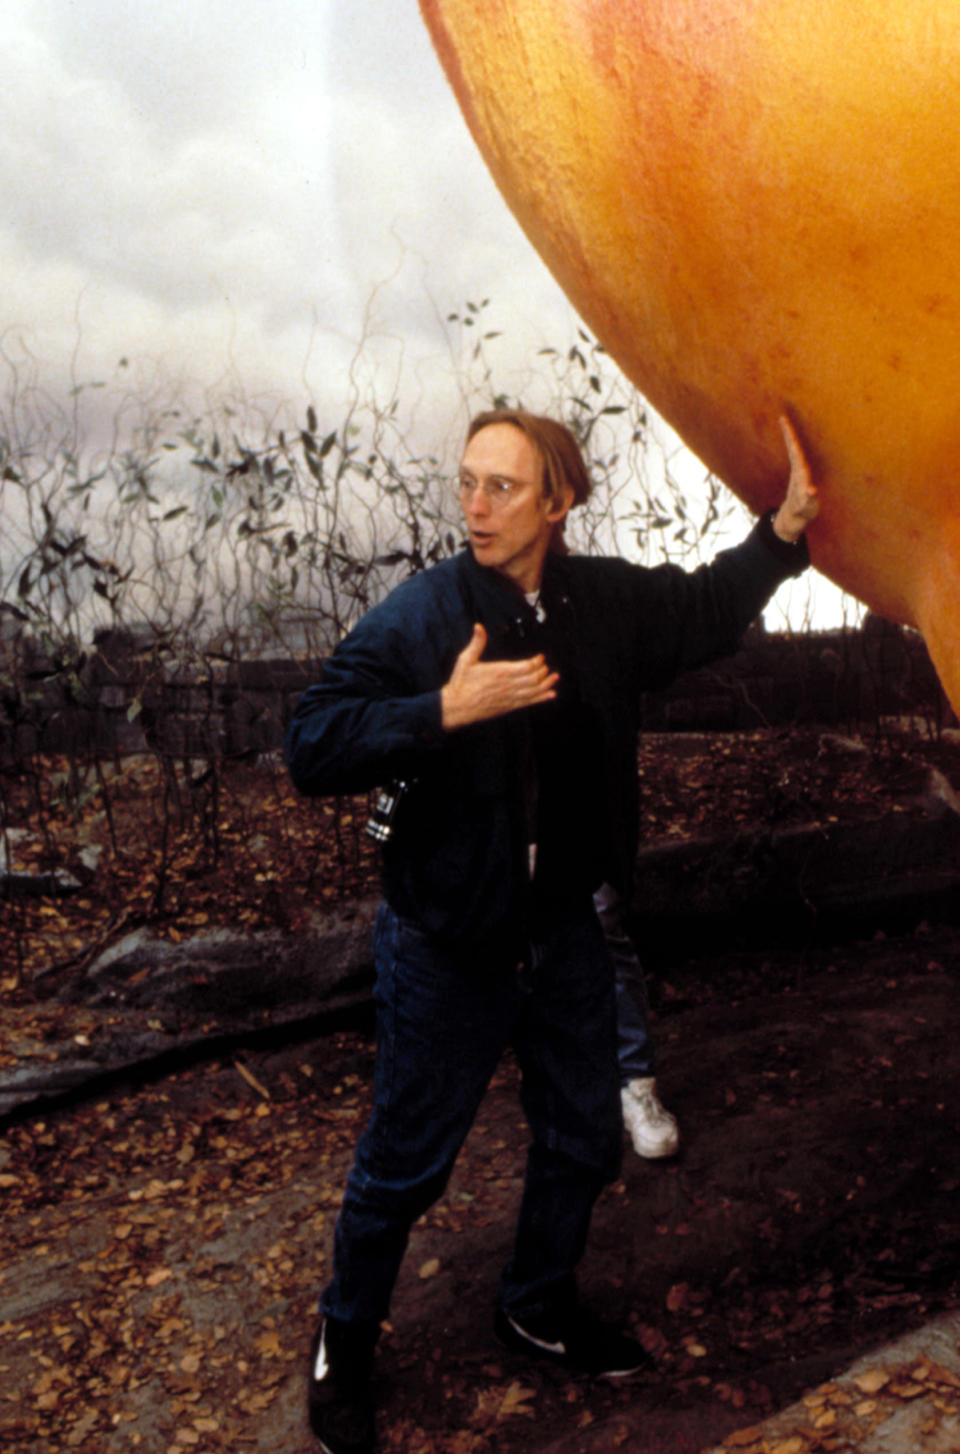 Director Henry Selick on the set of <em>James and the Giant Peach</em> (1996), his follow-up to <em>The Nightmare Before Christmas.</em> (Image: Everett Collection)